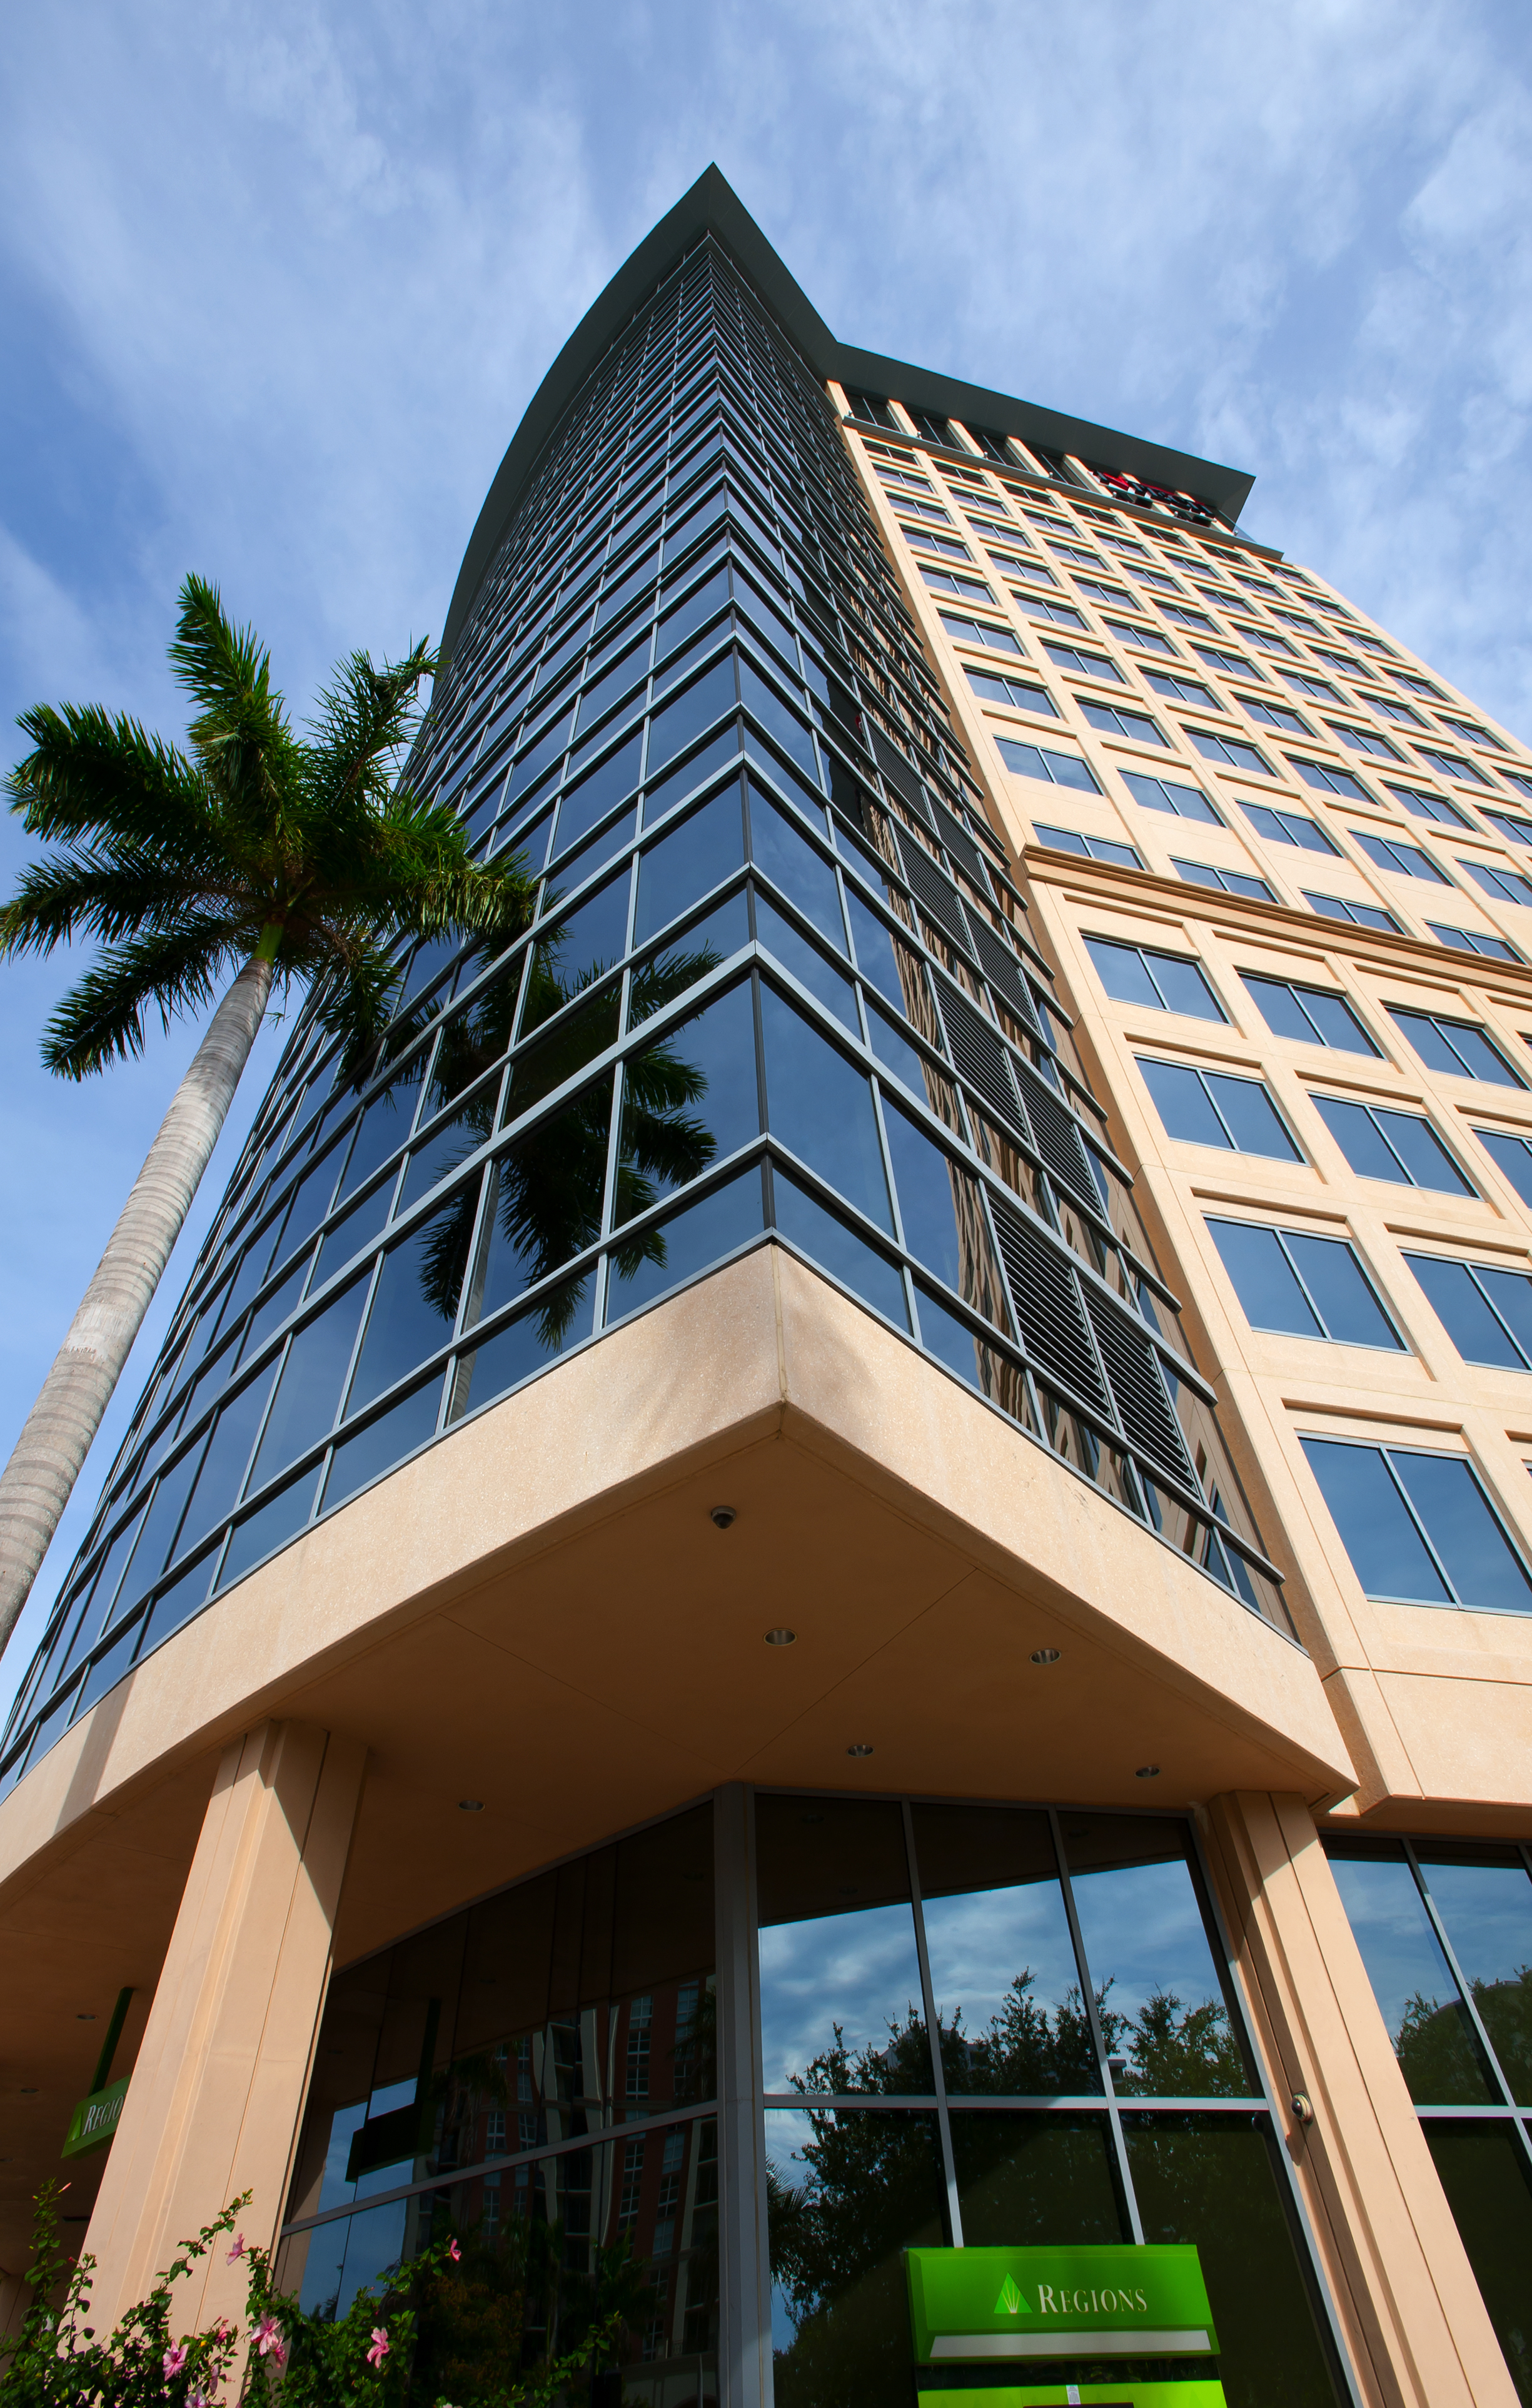 "KBS Real Estate Investment Trust II (""KBS REIT II""), a public non-traded real estate investment trust based in Newport Beach, Calif., has sold City Place Tower, a 295,933-square-foot office building in West Palm Beach, Fla., for $150 million. KBS REIT II acquired the asset for $126.5 million in April 2011."